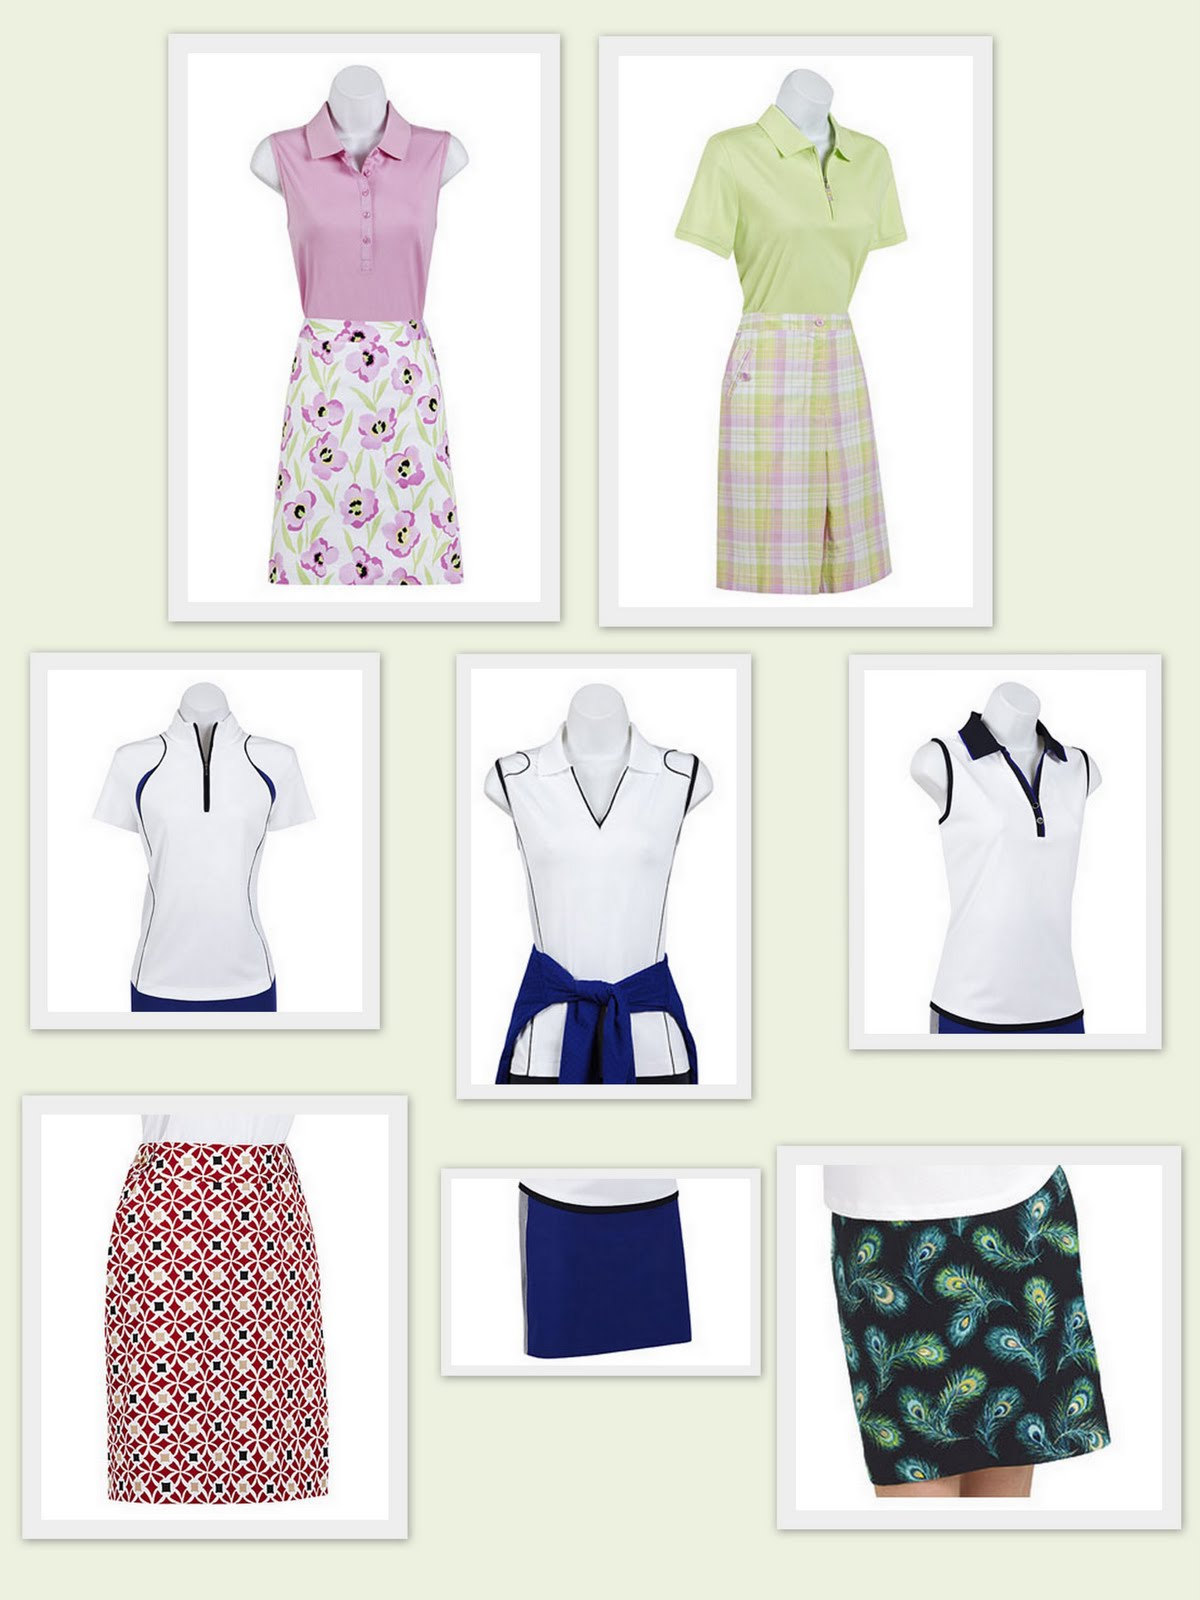 Ladies  golf fashions are making it to the local eateries with ease. EP Pro  has designed Tour Tech fashions that look as good on the fairways as they  do in ... 99626fa70c5